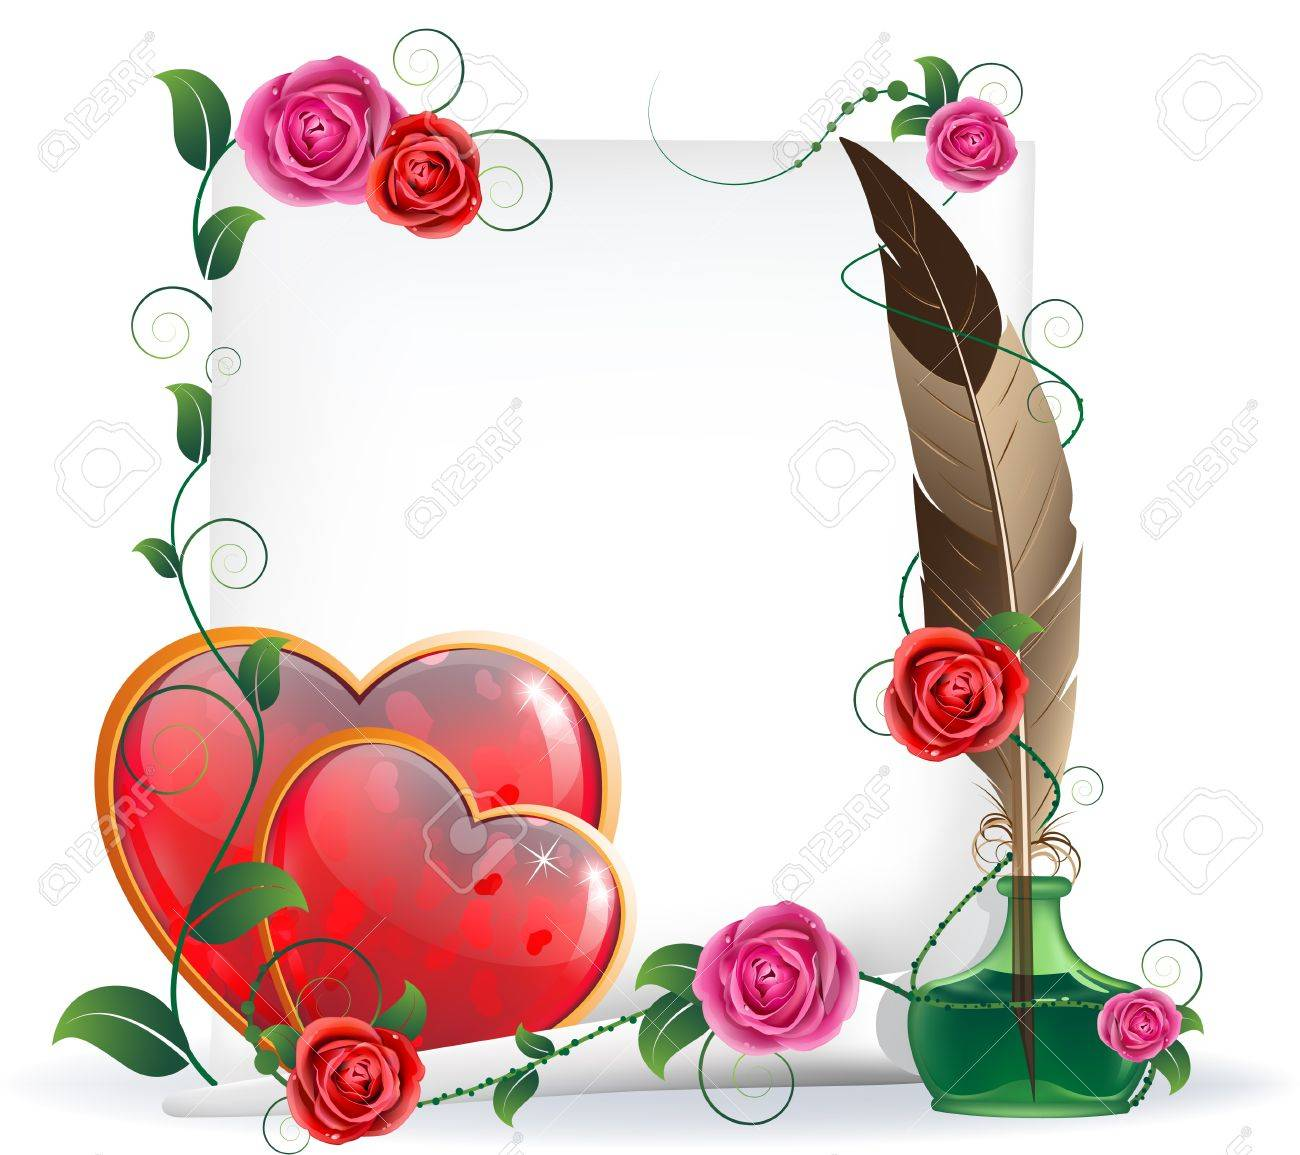 Shining hearts with floral pattern, parchment, inkwell and feather. Valentines Day card. Stock Vector - 17778920